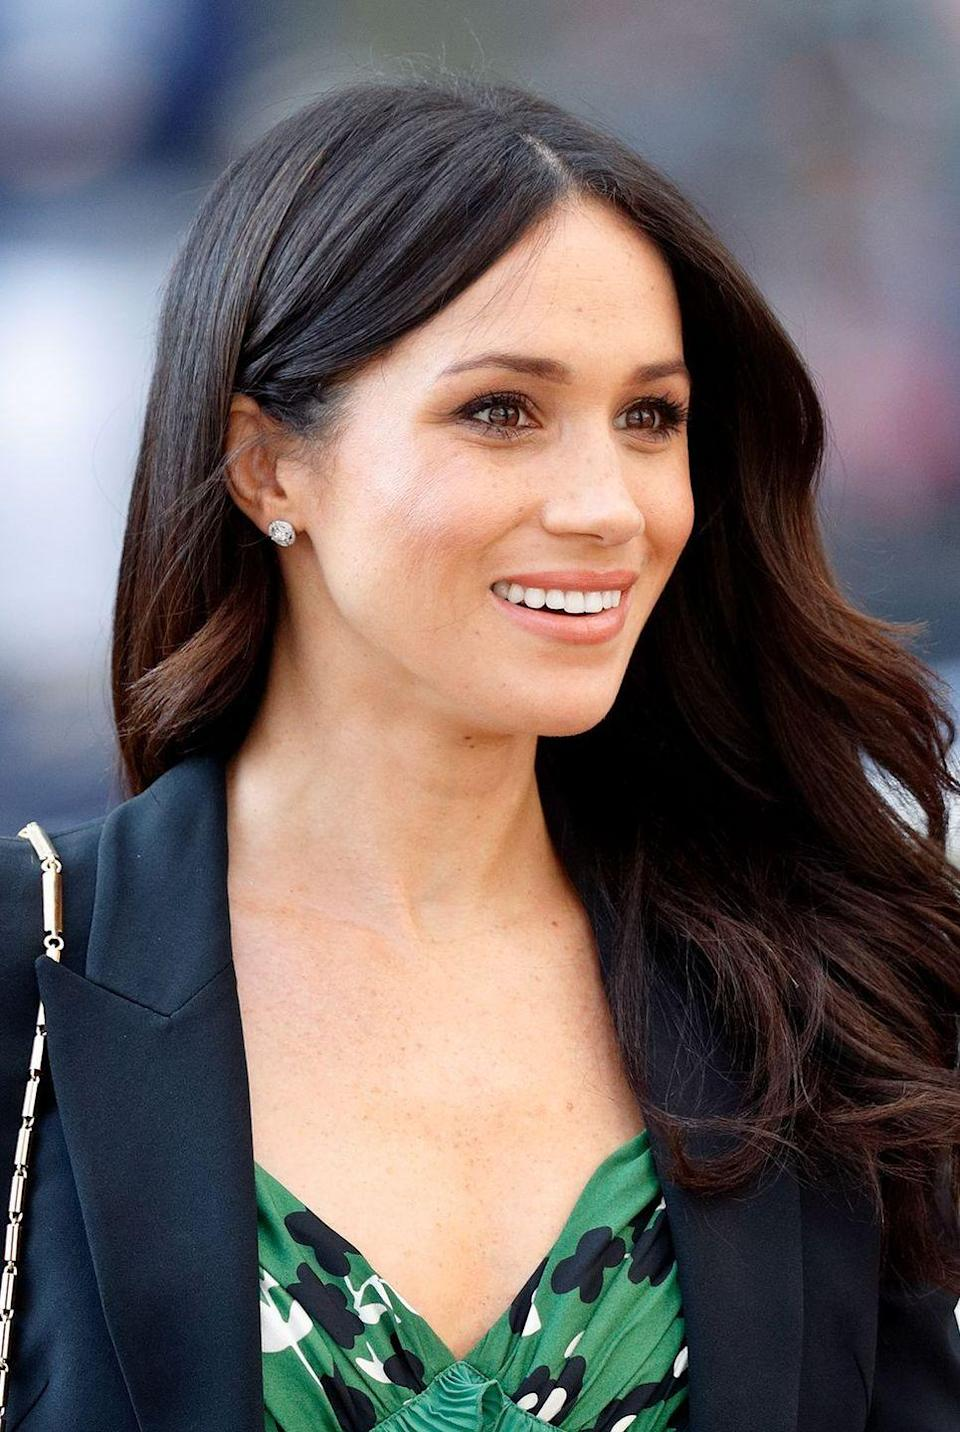 """<p>Pump out 15 reps of ... smiling? """"I do facial exercises from one of my favourite aestheticians, Nicola Joss, who basically has you sculpt your face from the inside out,"""" the Duchess of Sussex told <a href=""""https://www.birchbox.com/magazine/article/meghan-markle-suits-beauty-secrets?"""" rel=""""nofollow noopener"""" target=""""_blank"""" data-ylk=""""slk:Birchbox"""" class=""""link rapid-noclick-resp"""">Birchbox</a> in 2014. """"I swear it works, as silly as you may feel. On the days I do it, my cheekbones and jawline are way more sculpted.""""</p>"""